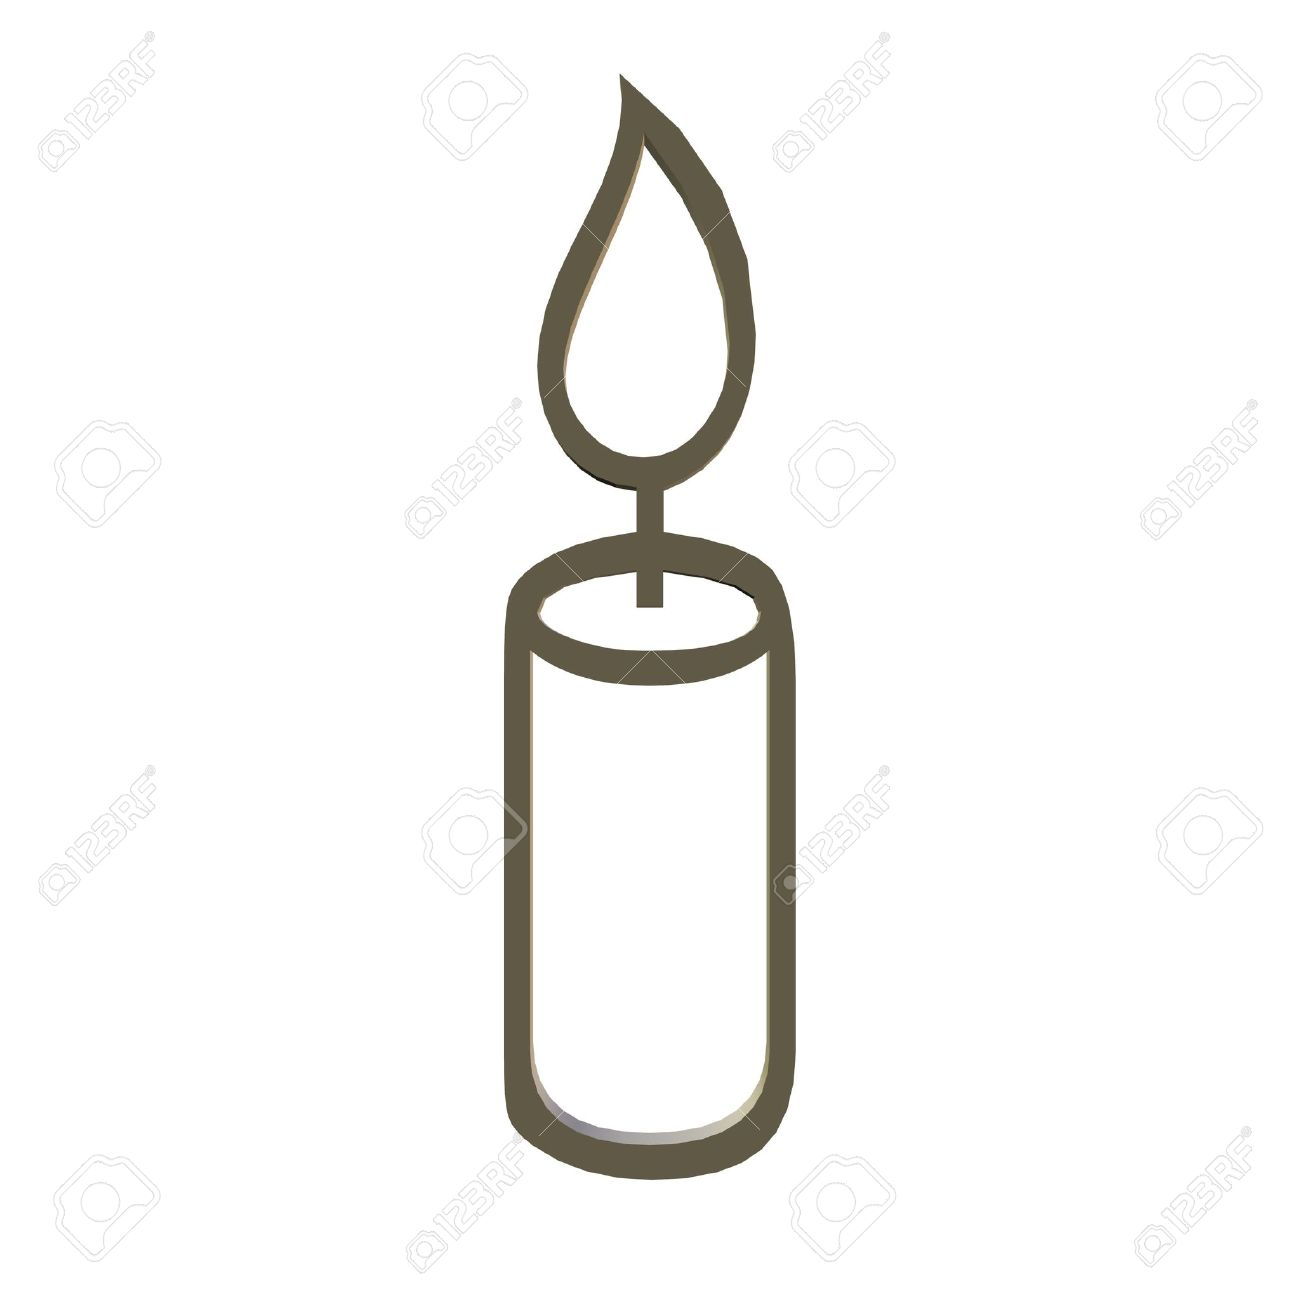 Clipart, Candle, Stock Photo - 1789655-clipart, candle, Stock Photo - 1789655-9